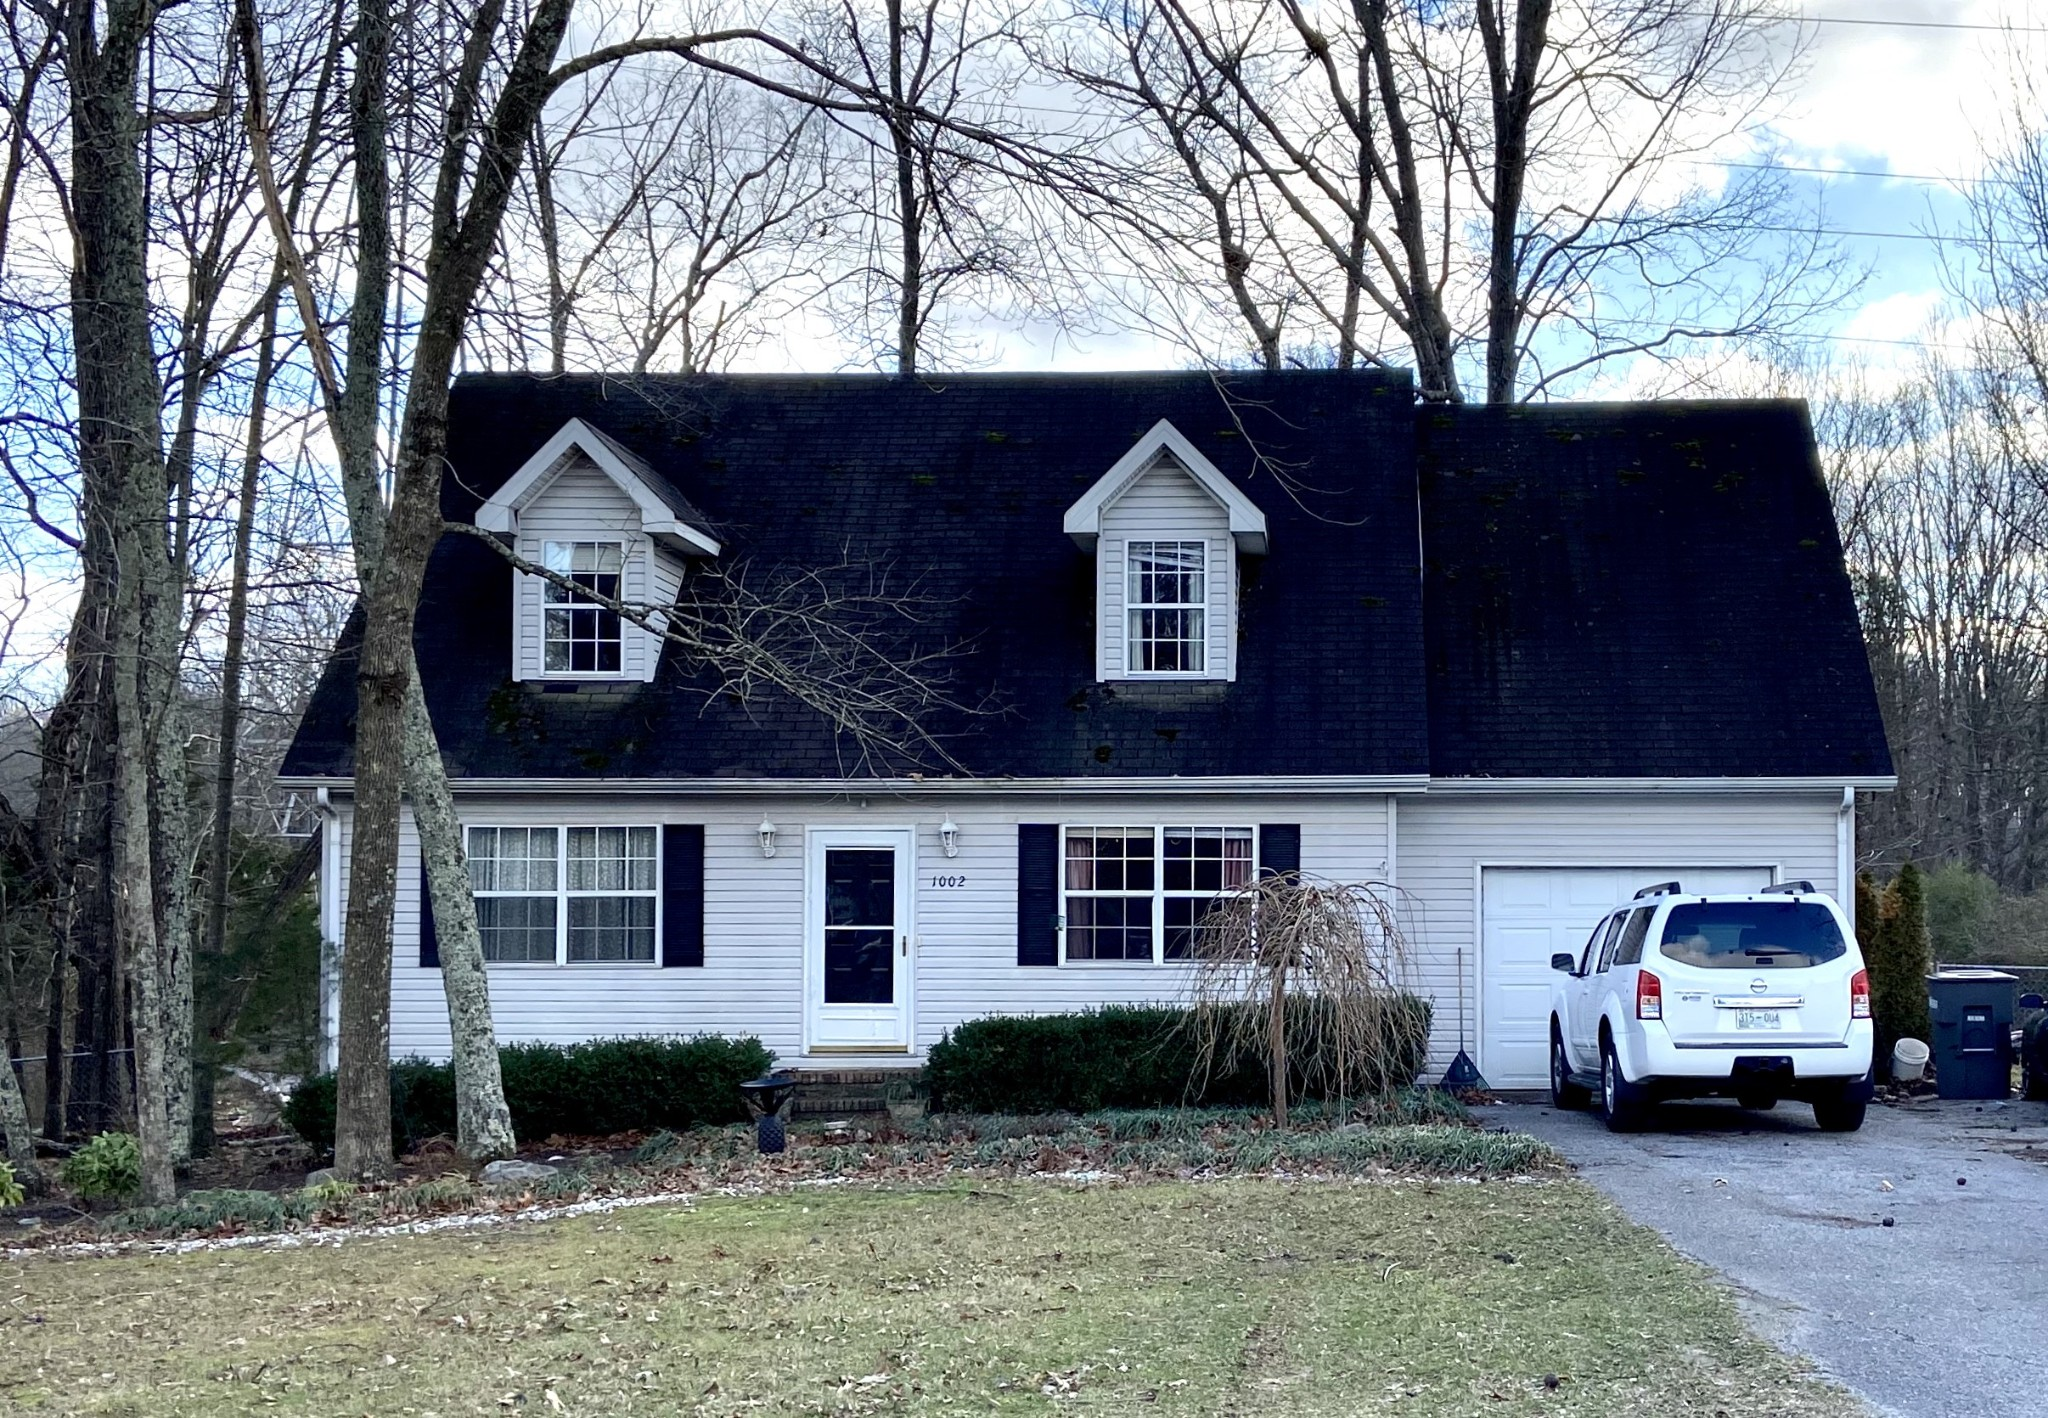 1002 Christmas LN, Cookeville, TN 38501 - Cookeville, TN real estate listing